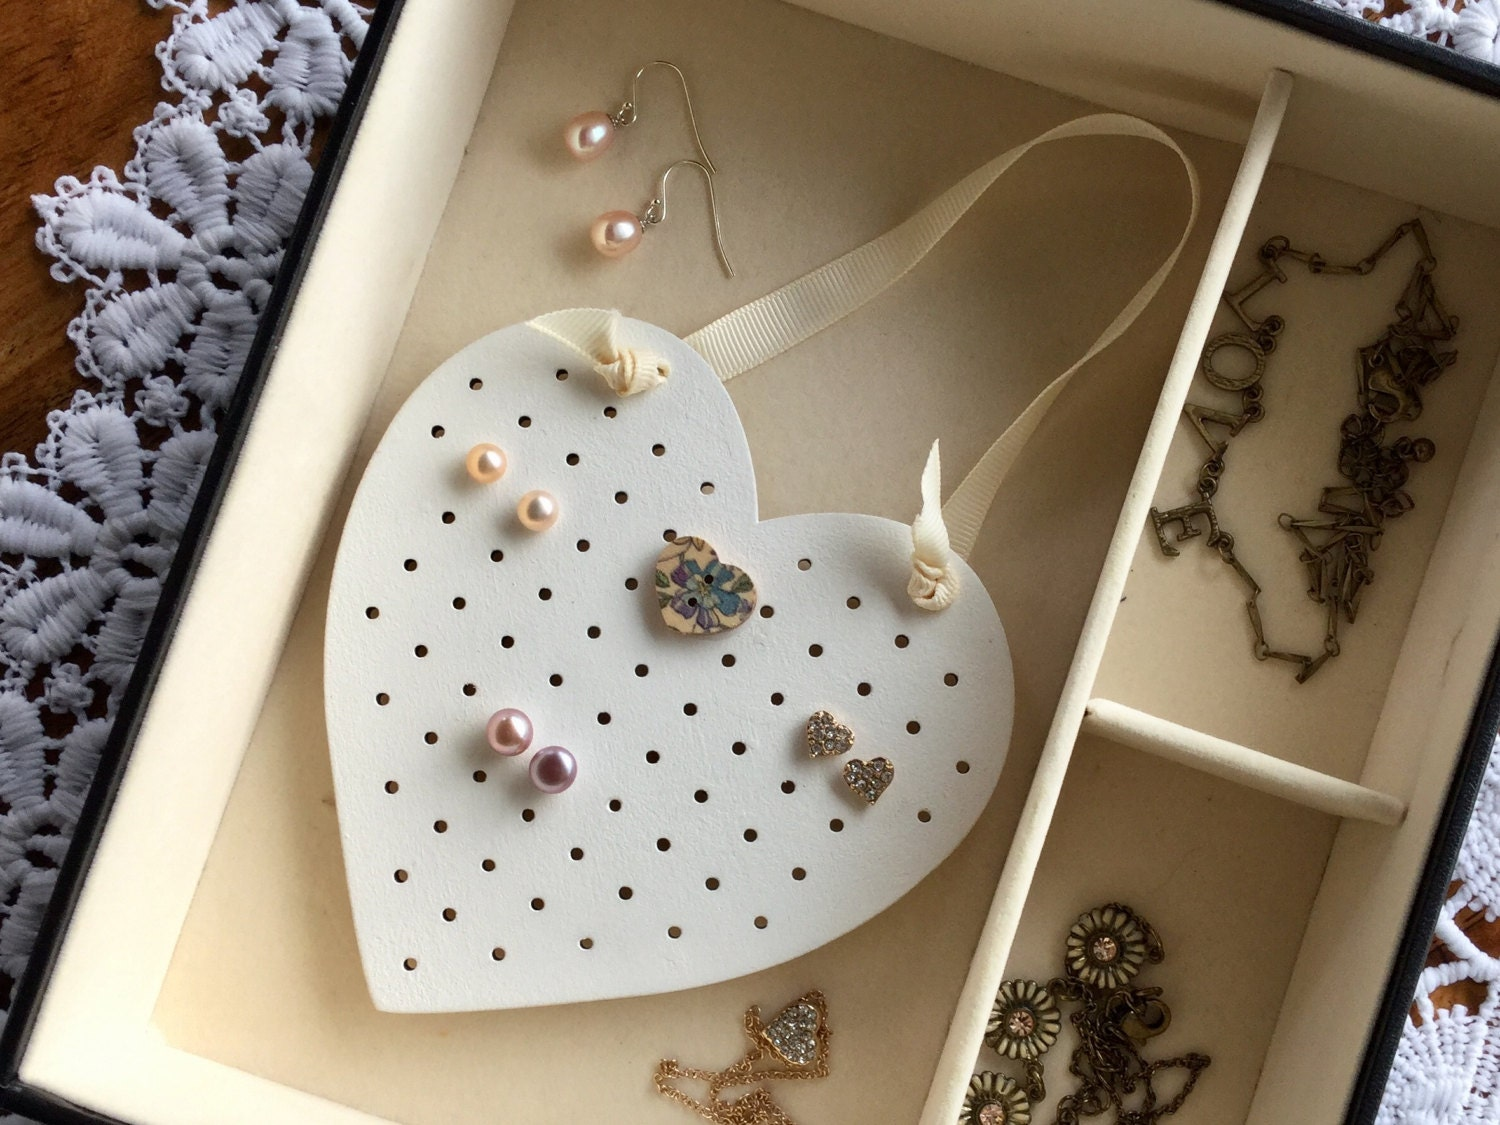 Antique White Shabby Chic Stud Earring Holder Organiser Stand For Jewellery Box Or Wall